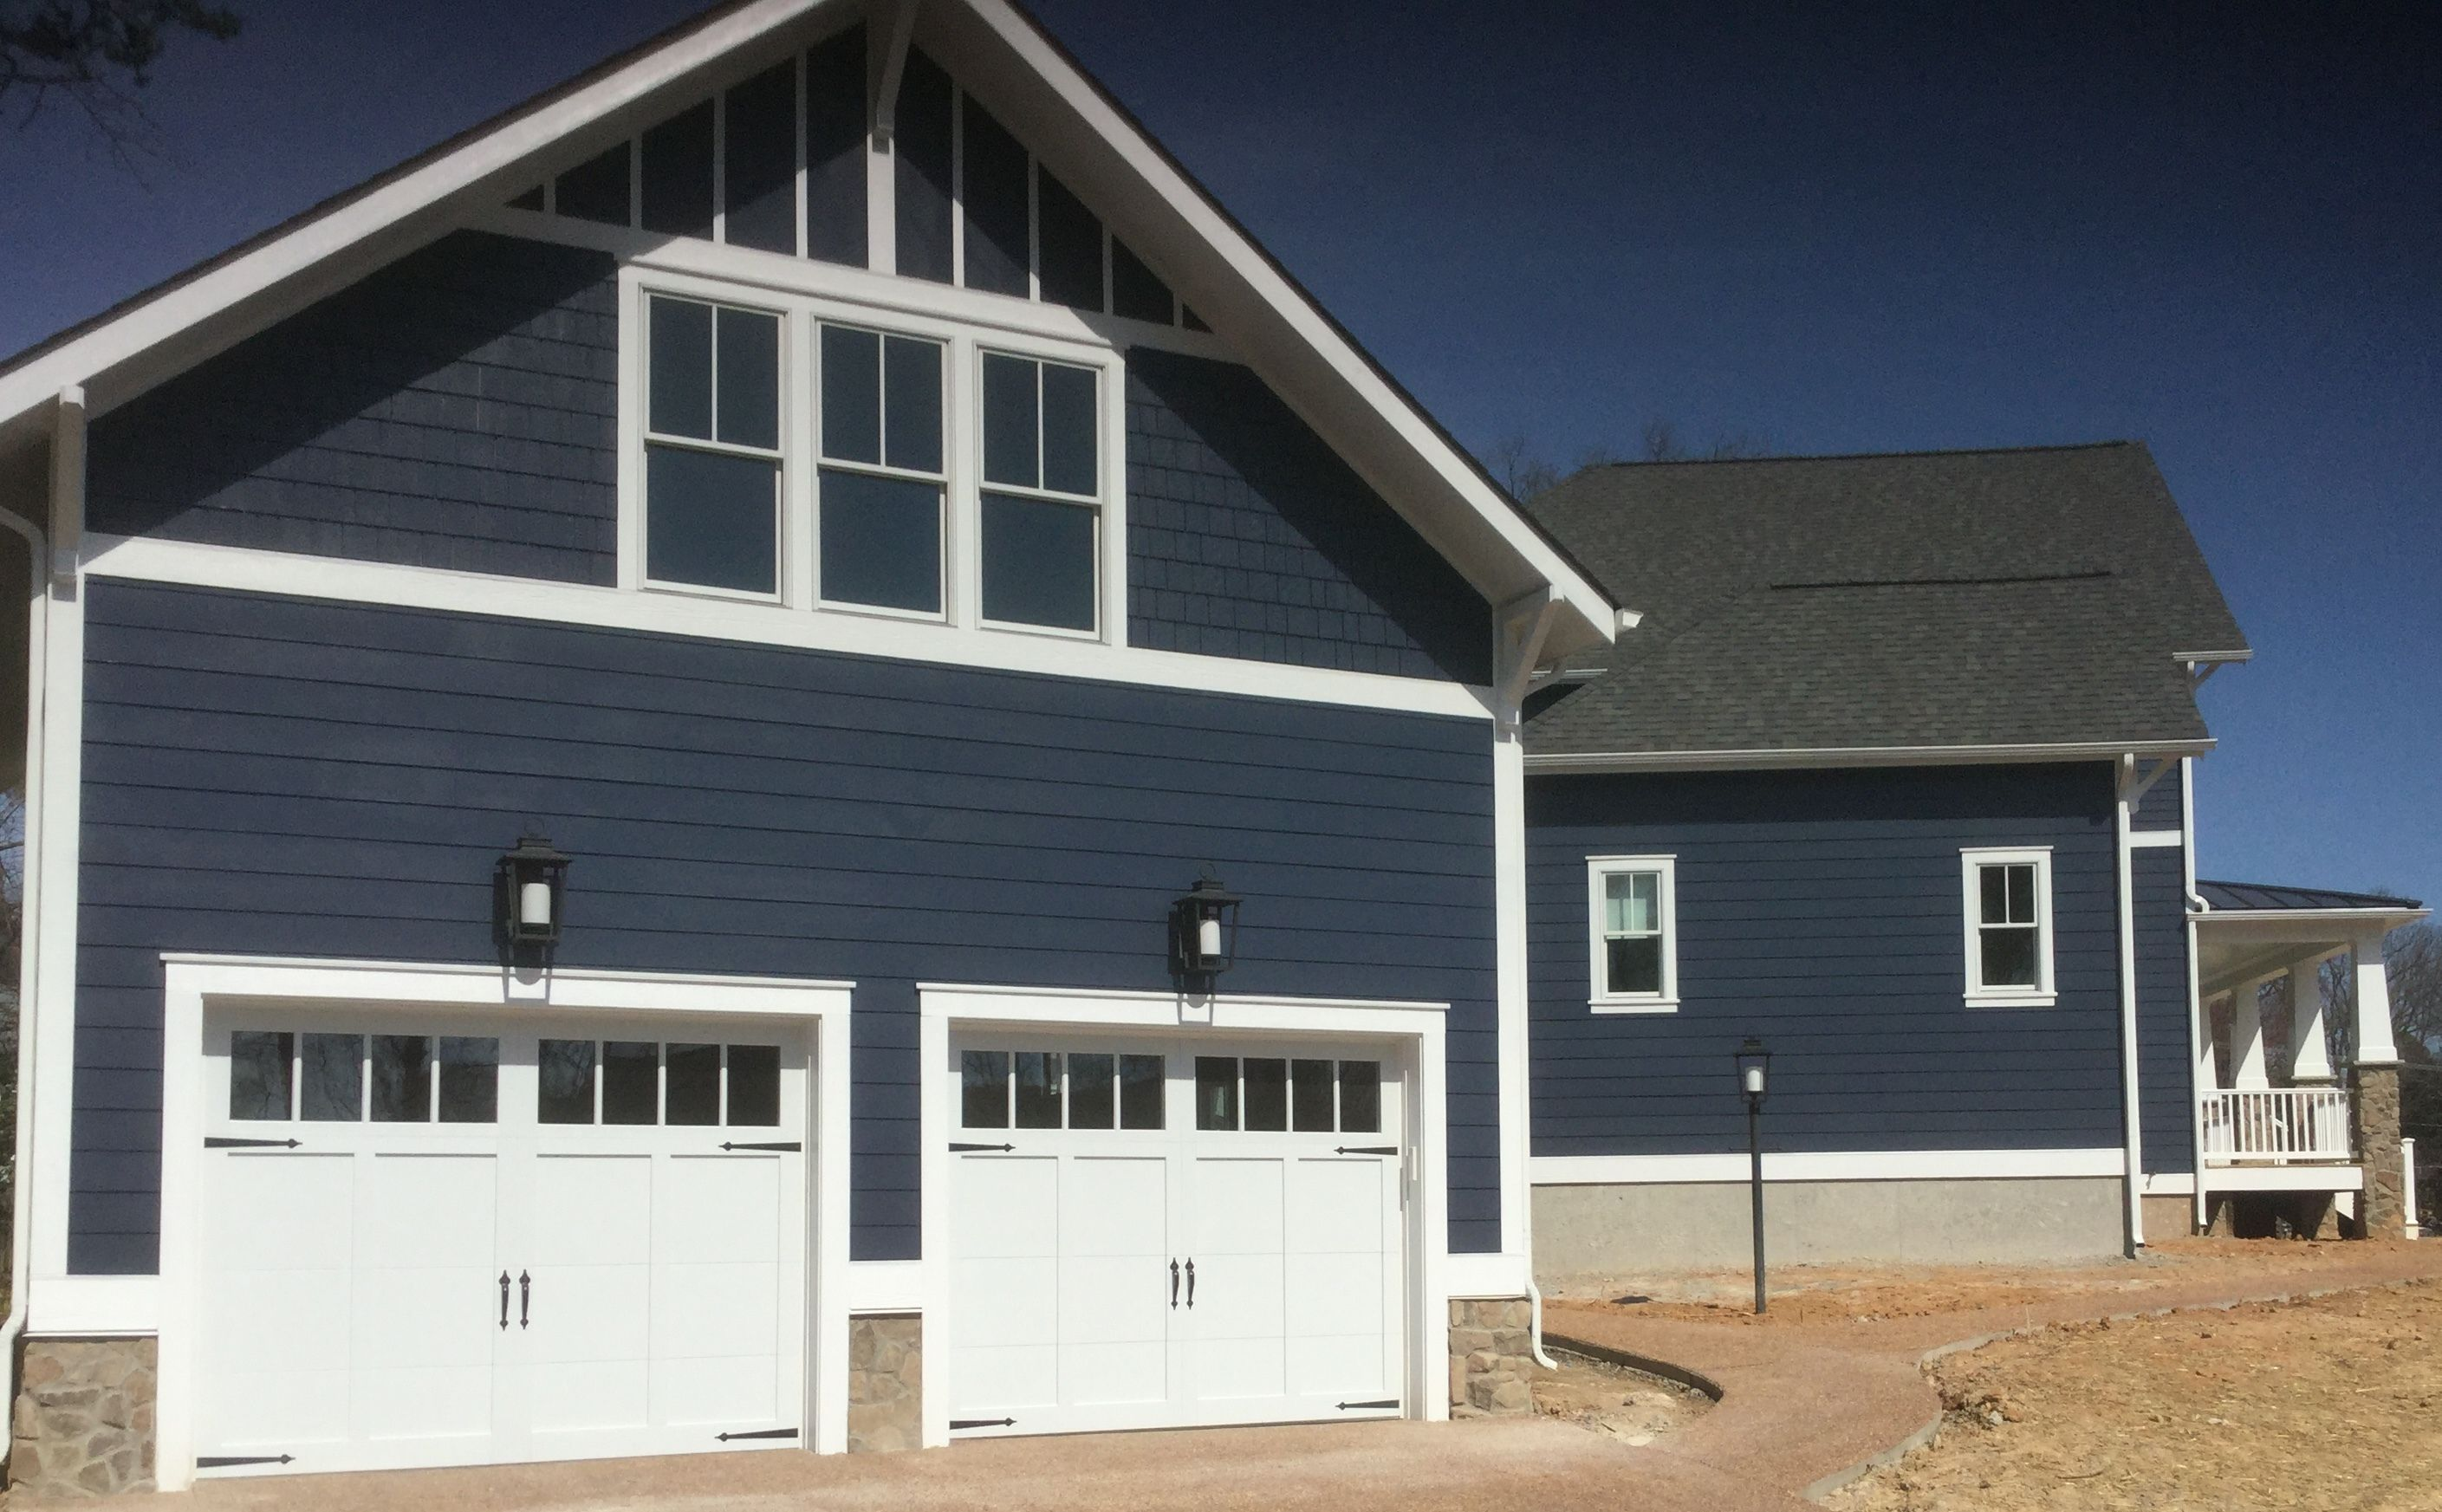 Two 9x7 Model 5630 Carriage Style Overlay Garage Doors With Square Madison Top Glass Installed By The Richmond Store Doors Outdoor Decor Garage Doors